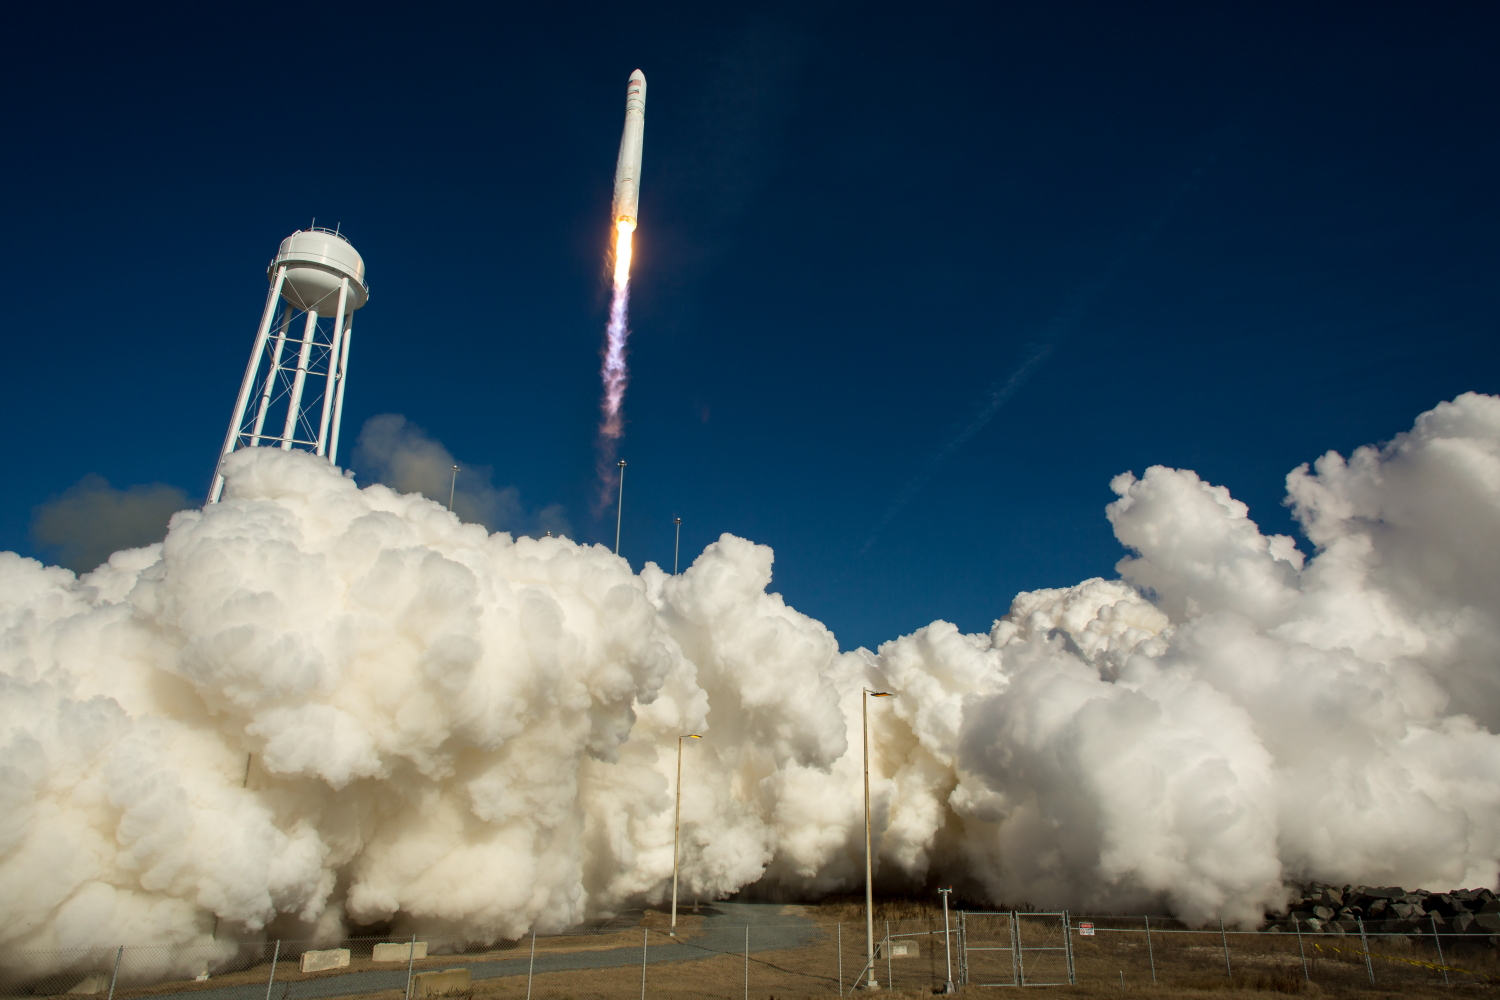 Antares blasts off on the Cygnus Orb-1 mission.